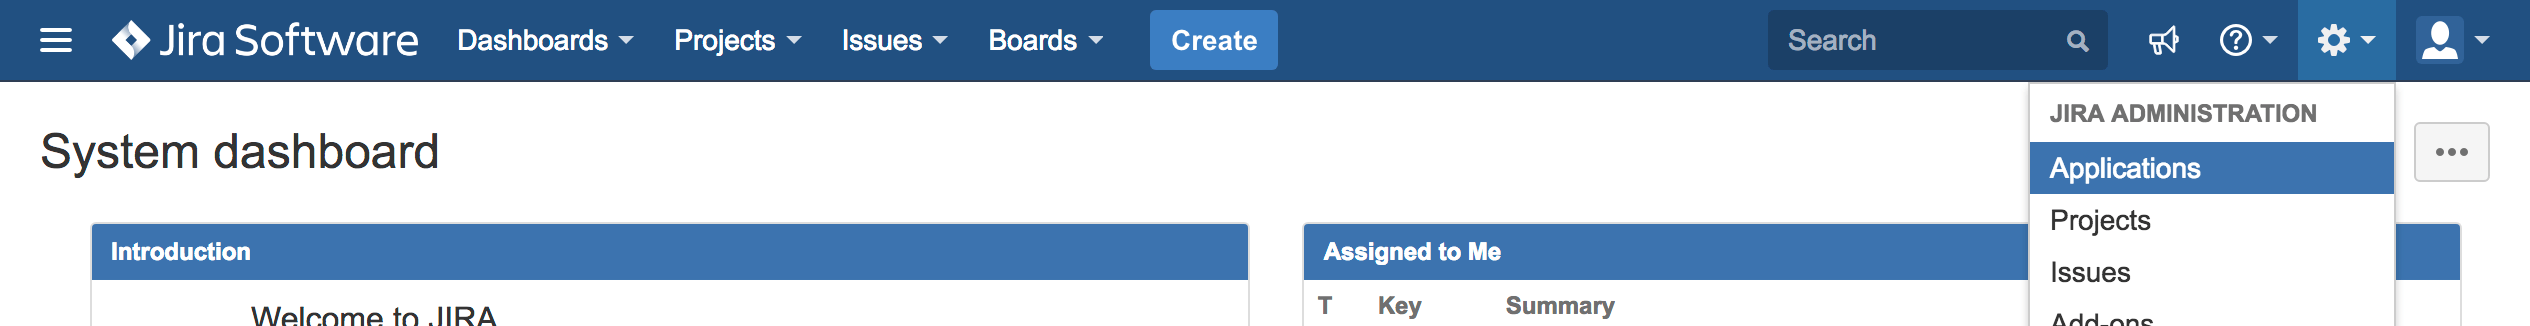 Within your Jira instance, navigate to the applications page